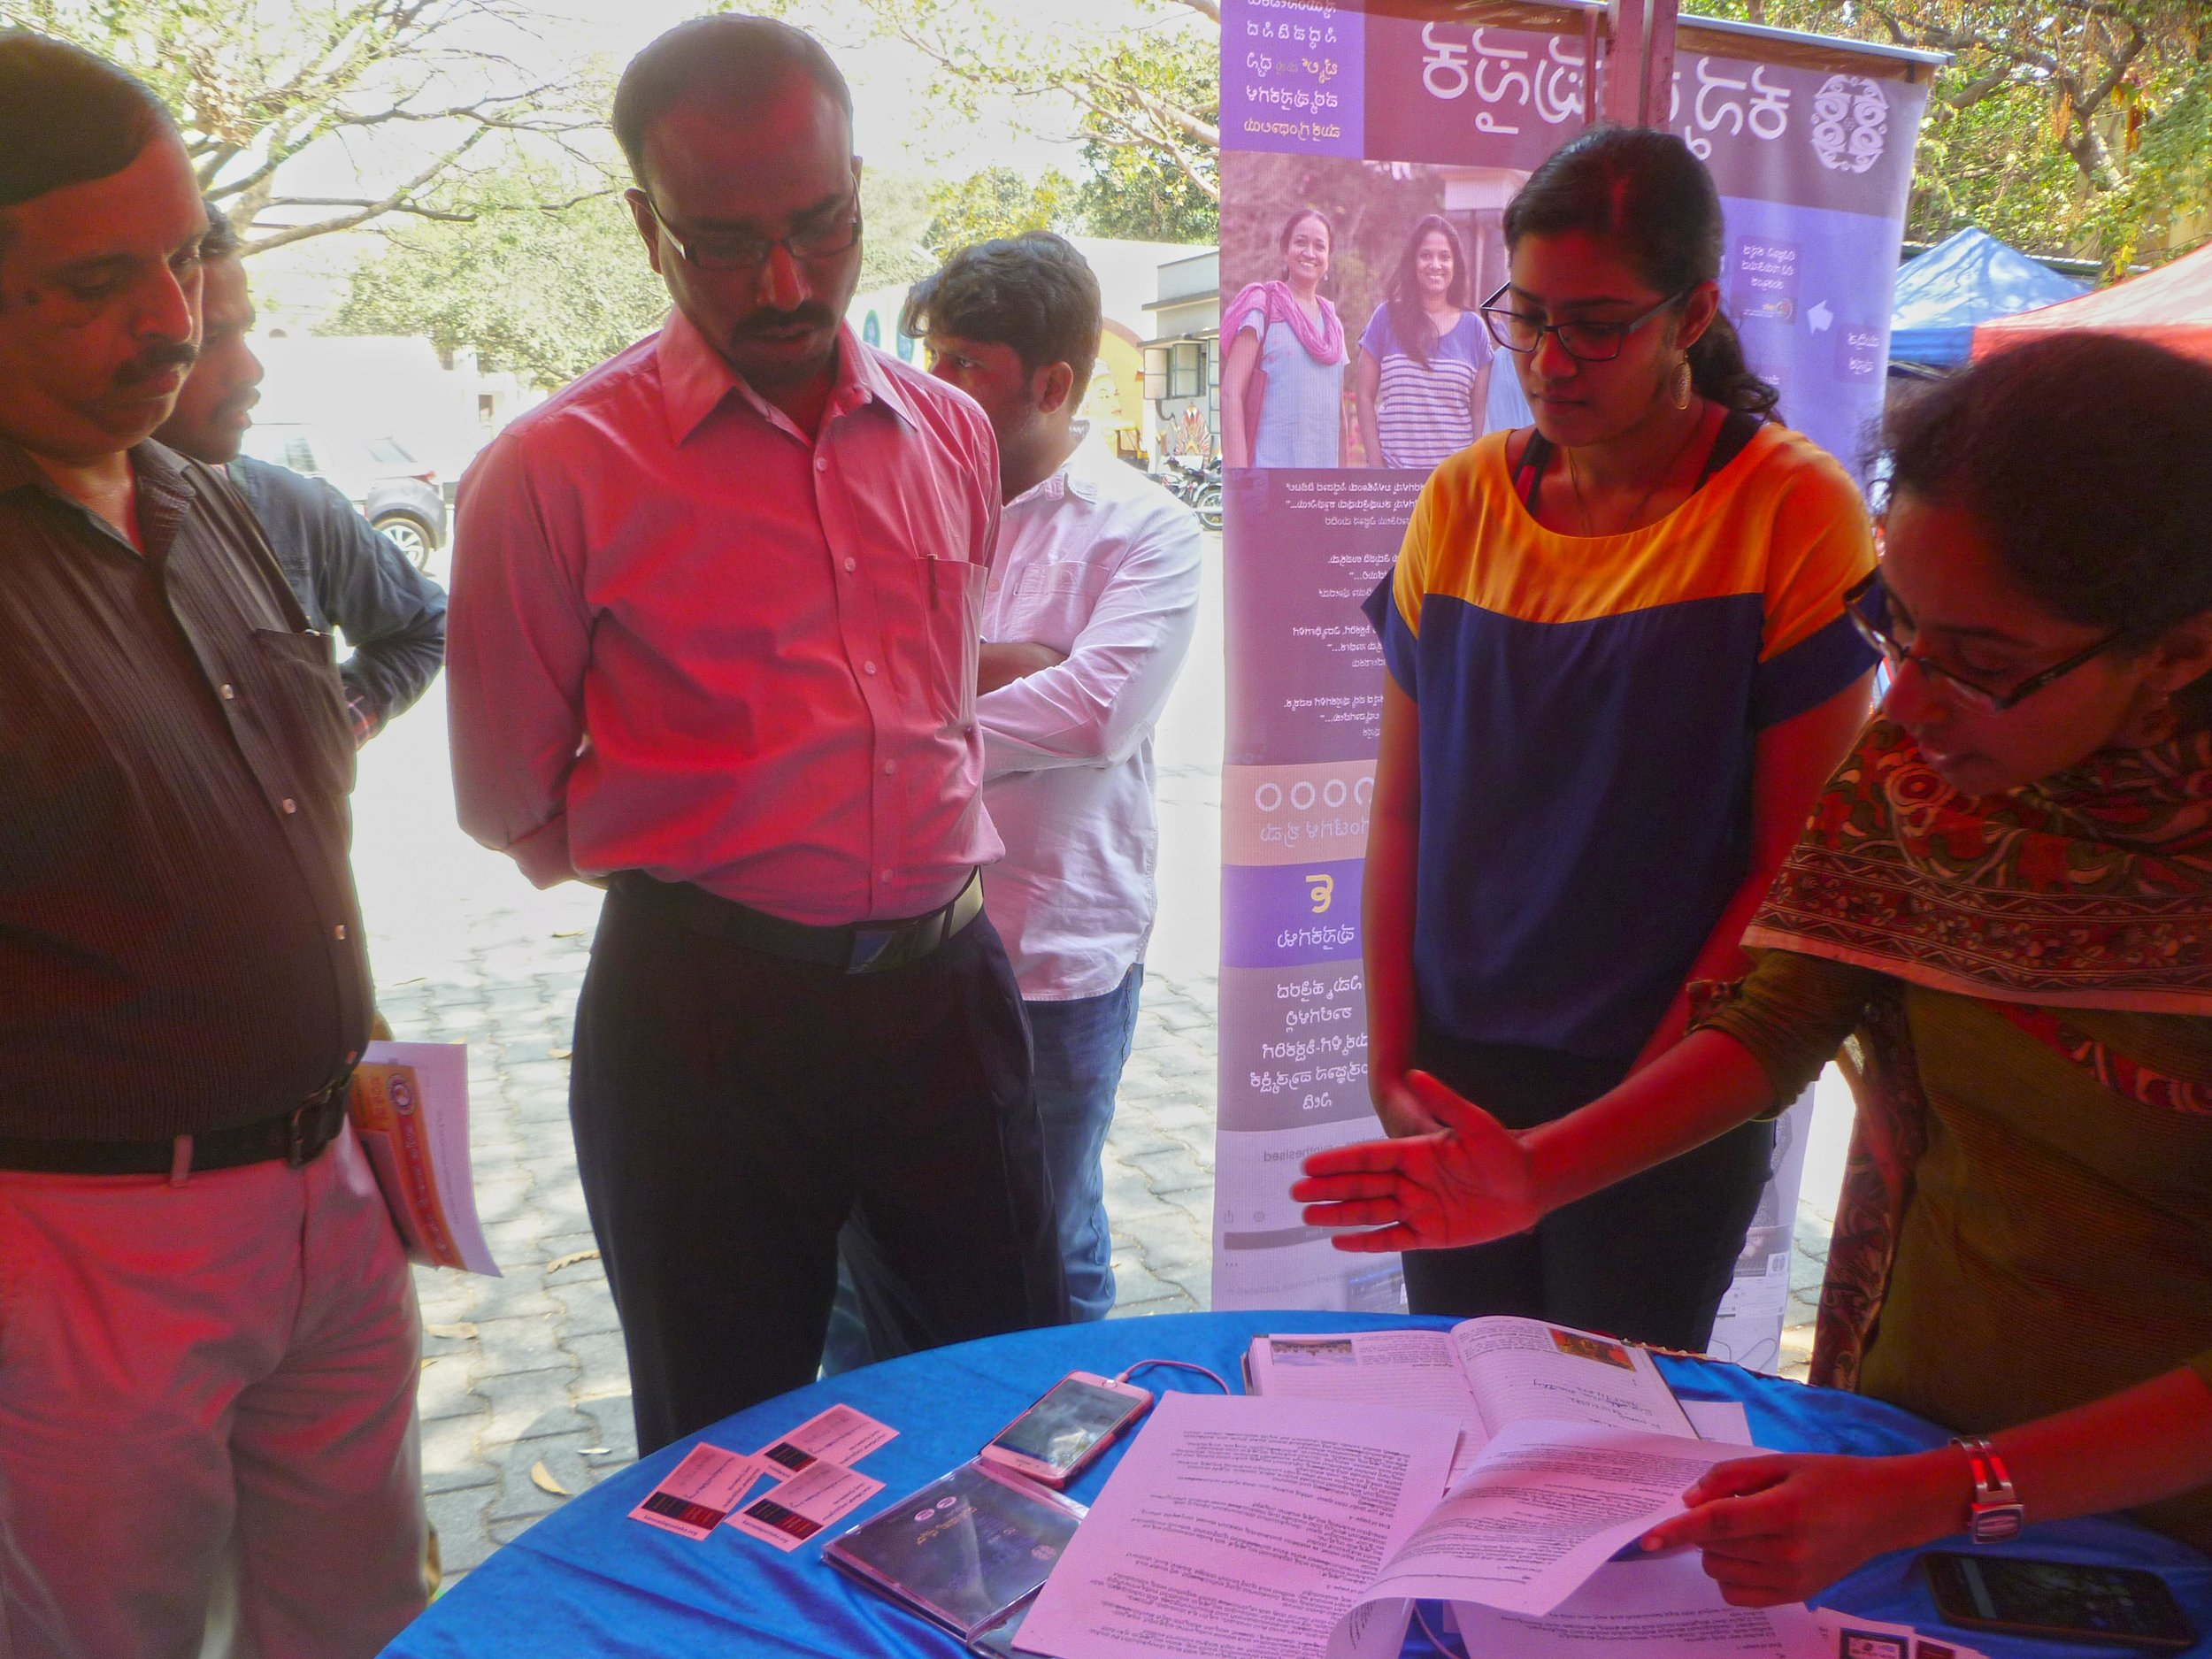 Our volunteers described the initiative to the chairman, Kannada and culture department, K.A. Dayananda at Ravindra Kalakshetra, Bengaluru on 5th March, 2017